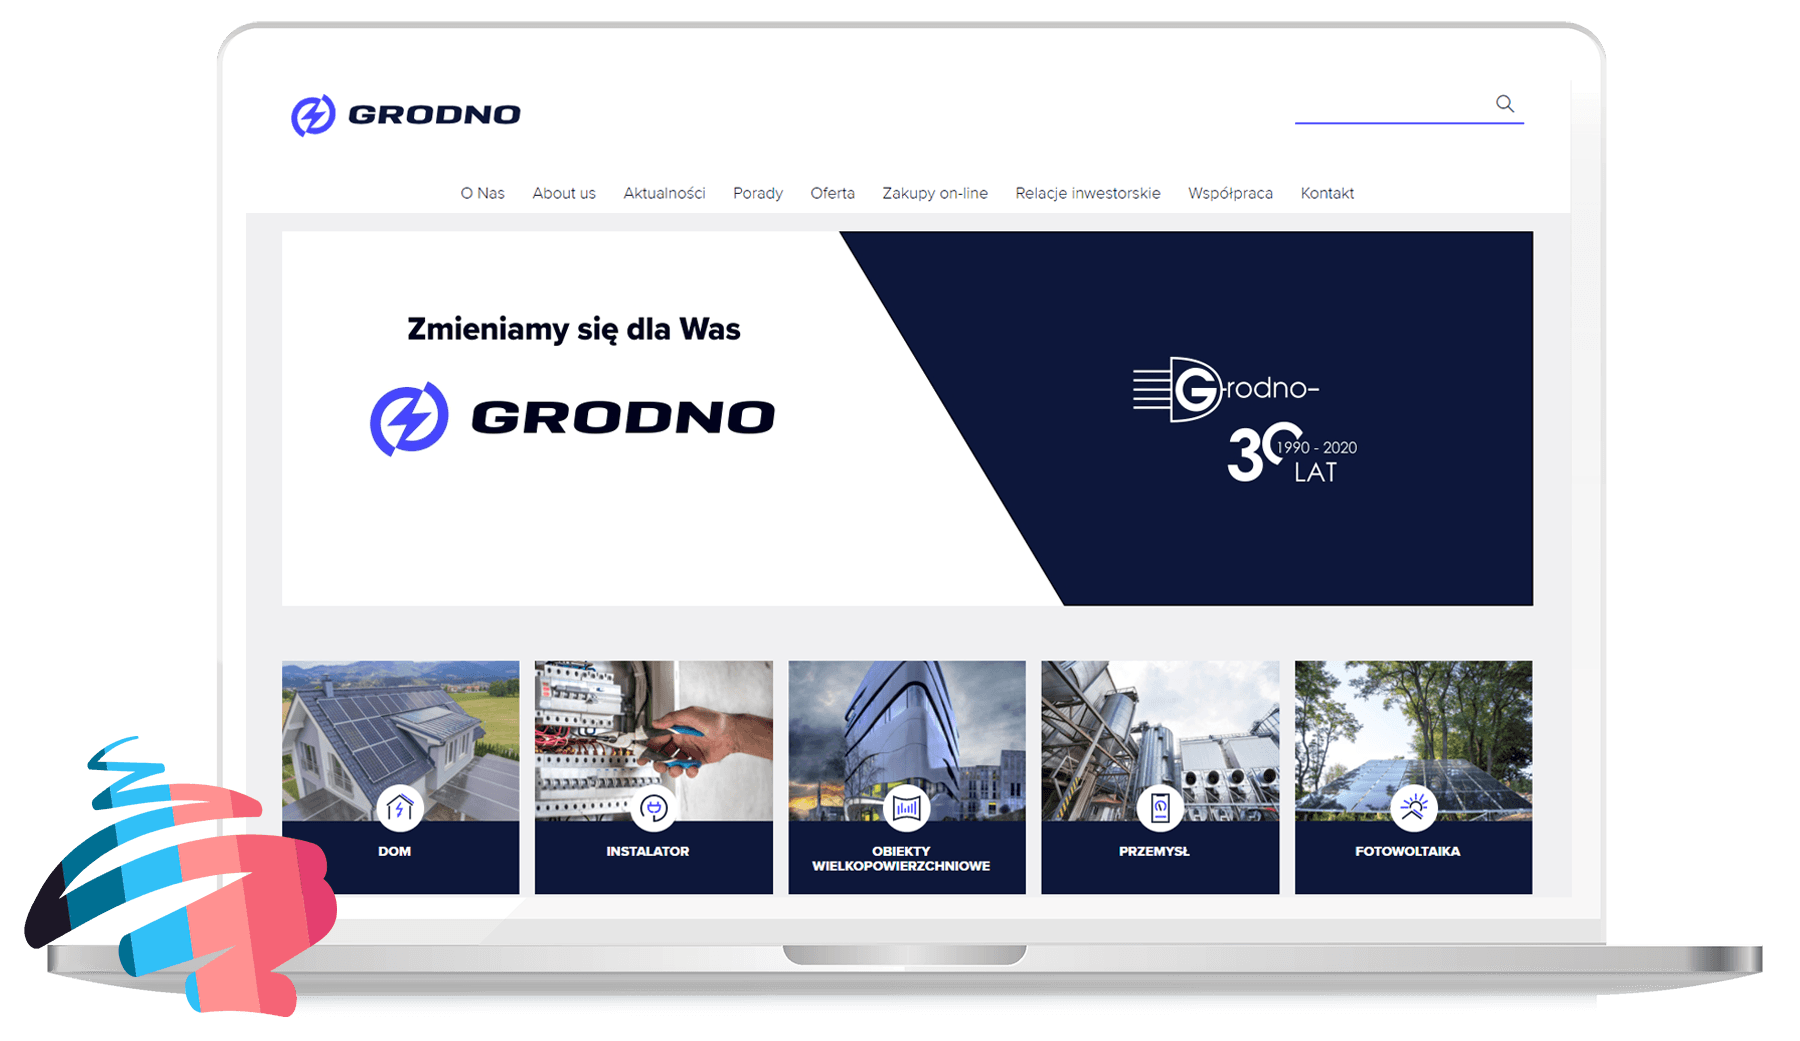 Implementation of PWA for Grodno